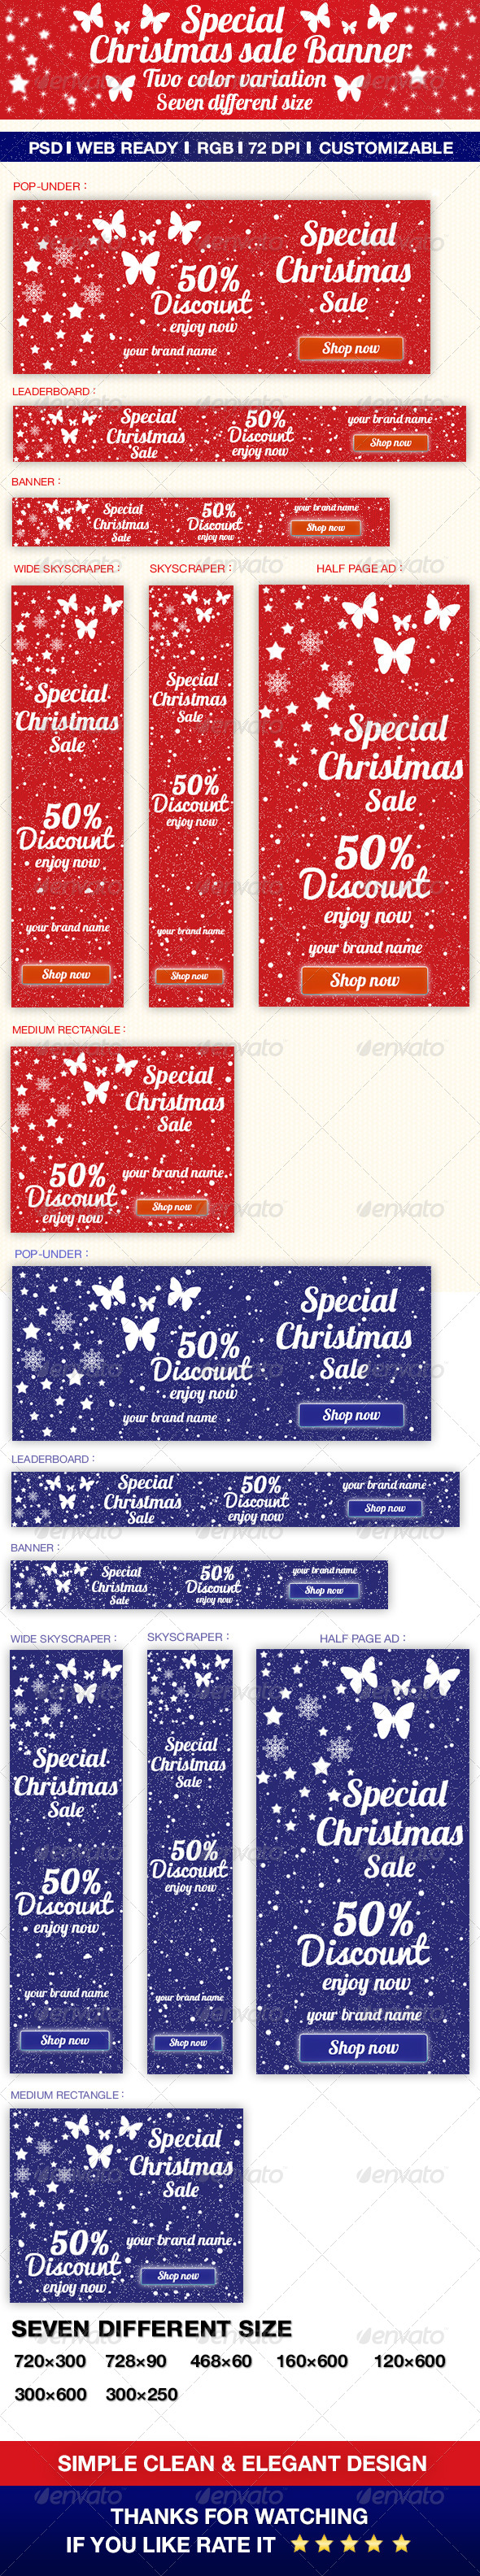 Special Christmas Sale Banners - Banners & Ads Web Elements